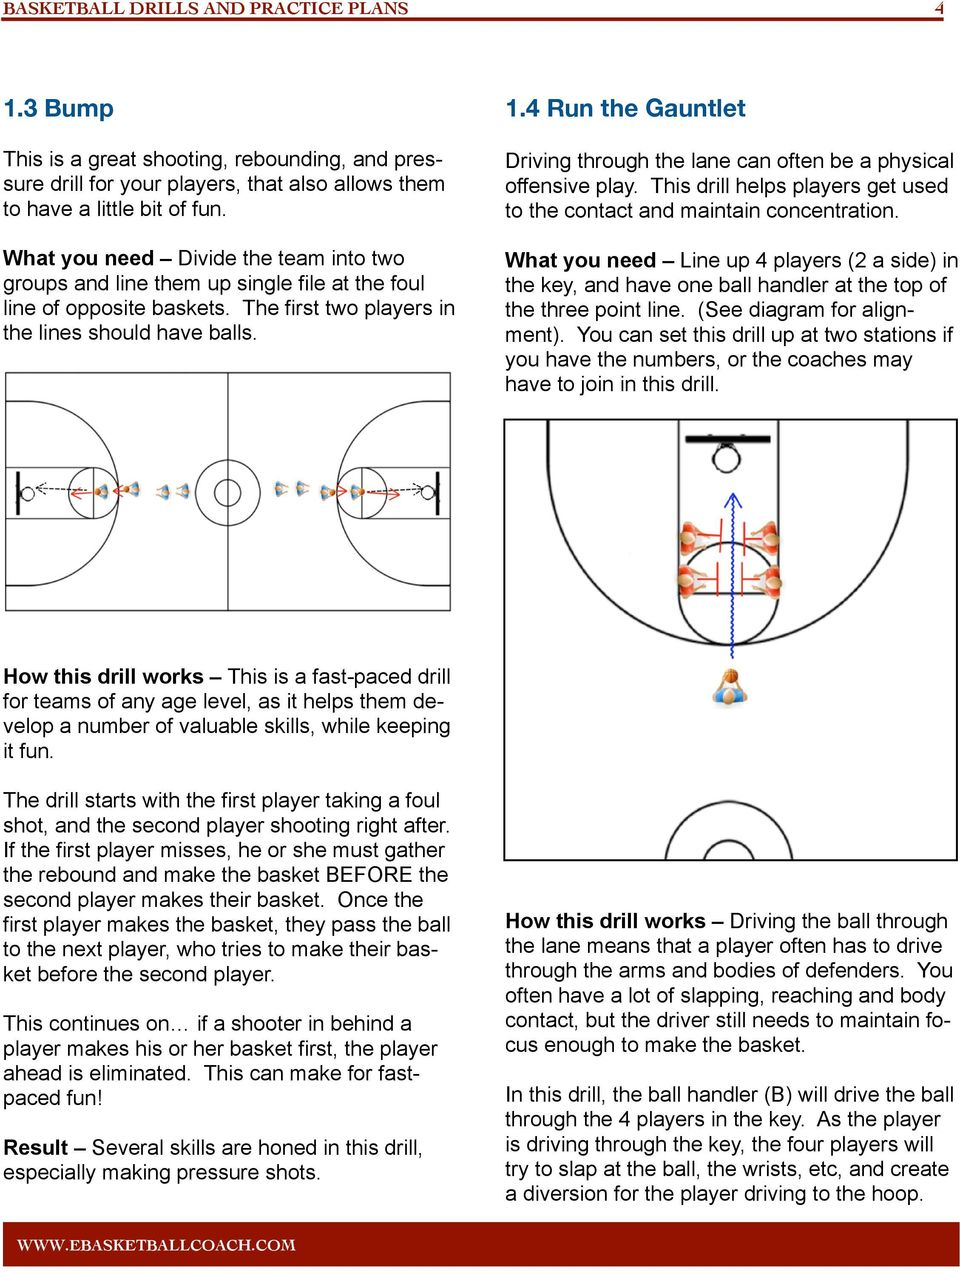 4 Run the Gauntlet Driving through the lane can often be a physical offensive play. This drill helps players get used to the contact and maintain concentration.